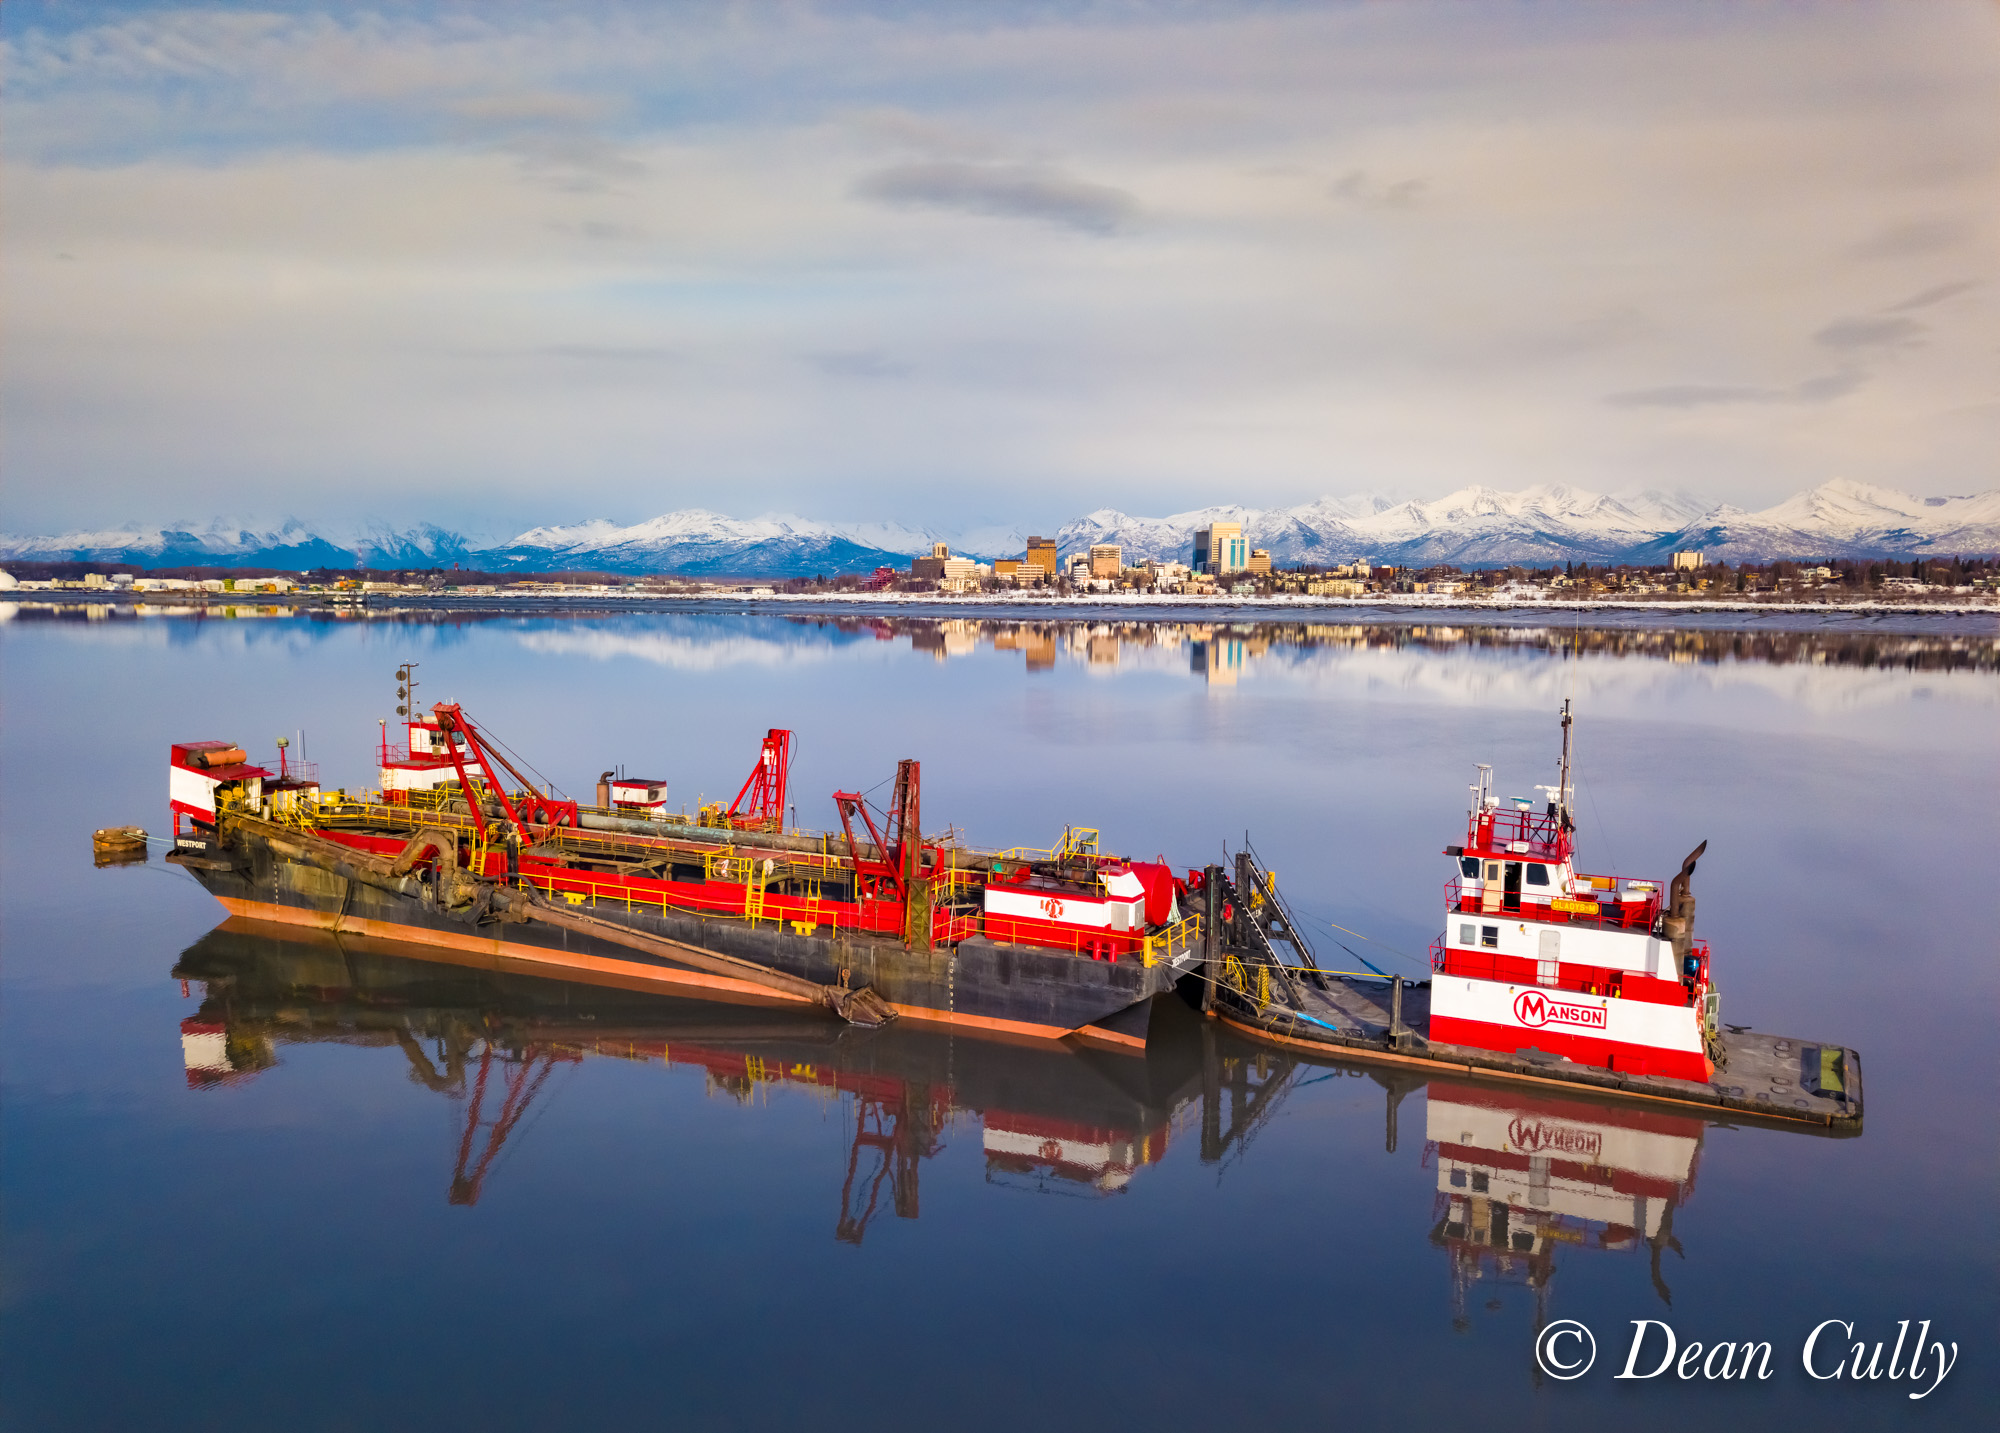 20180406_manson_gladys-m_westport_dredge_anchorage_alaska